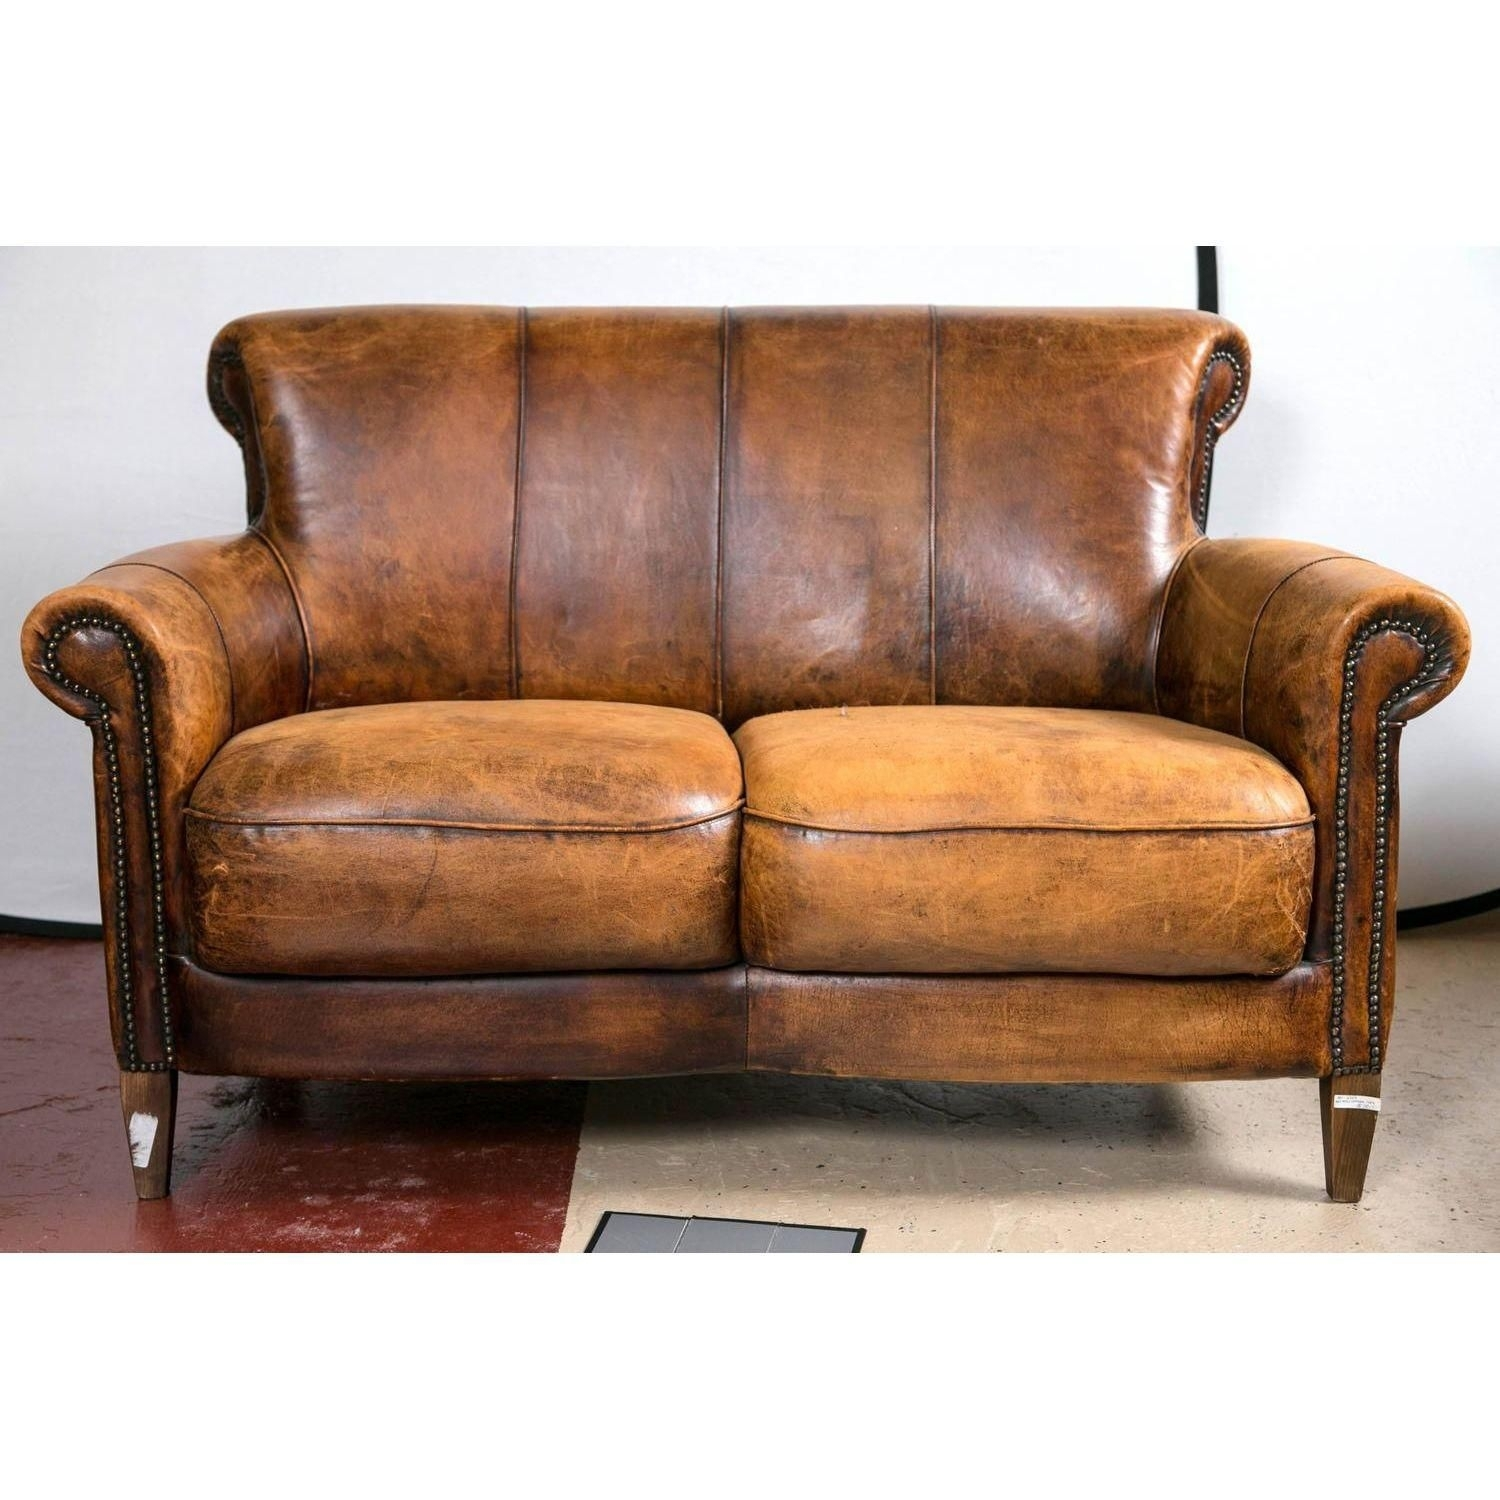 Vintage French Distressed Art Deco Leather Sofa | Leather Sofas, Art Regarding Art Deco Sofas (View 9 of 10)